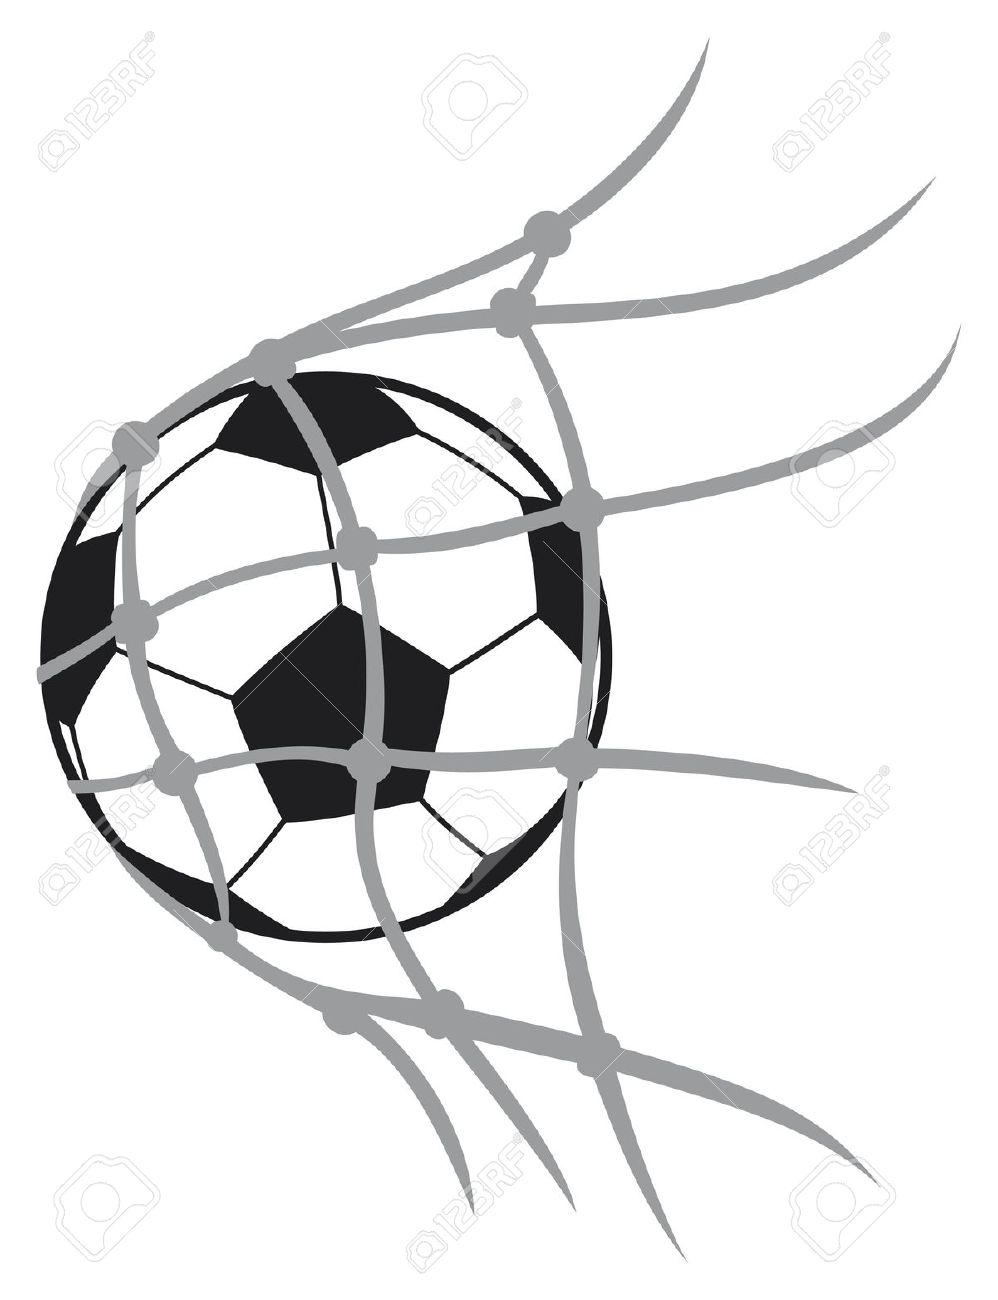 998x1300 Drawn Ball Soccer Goal Post